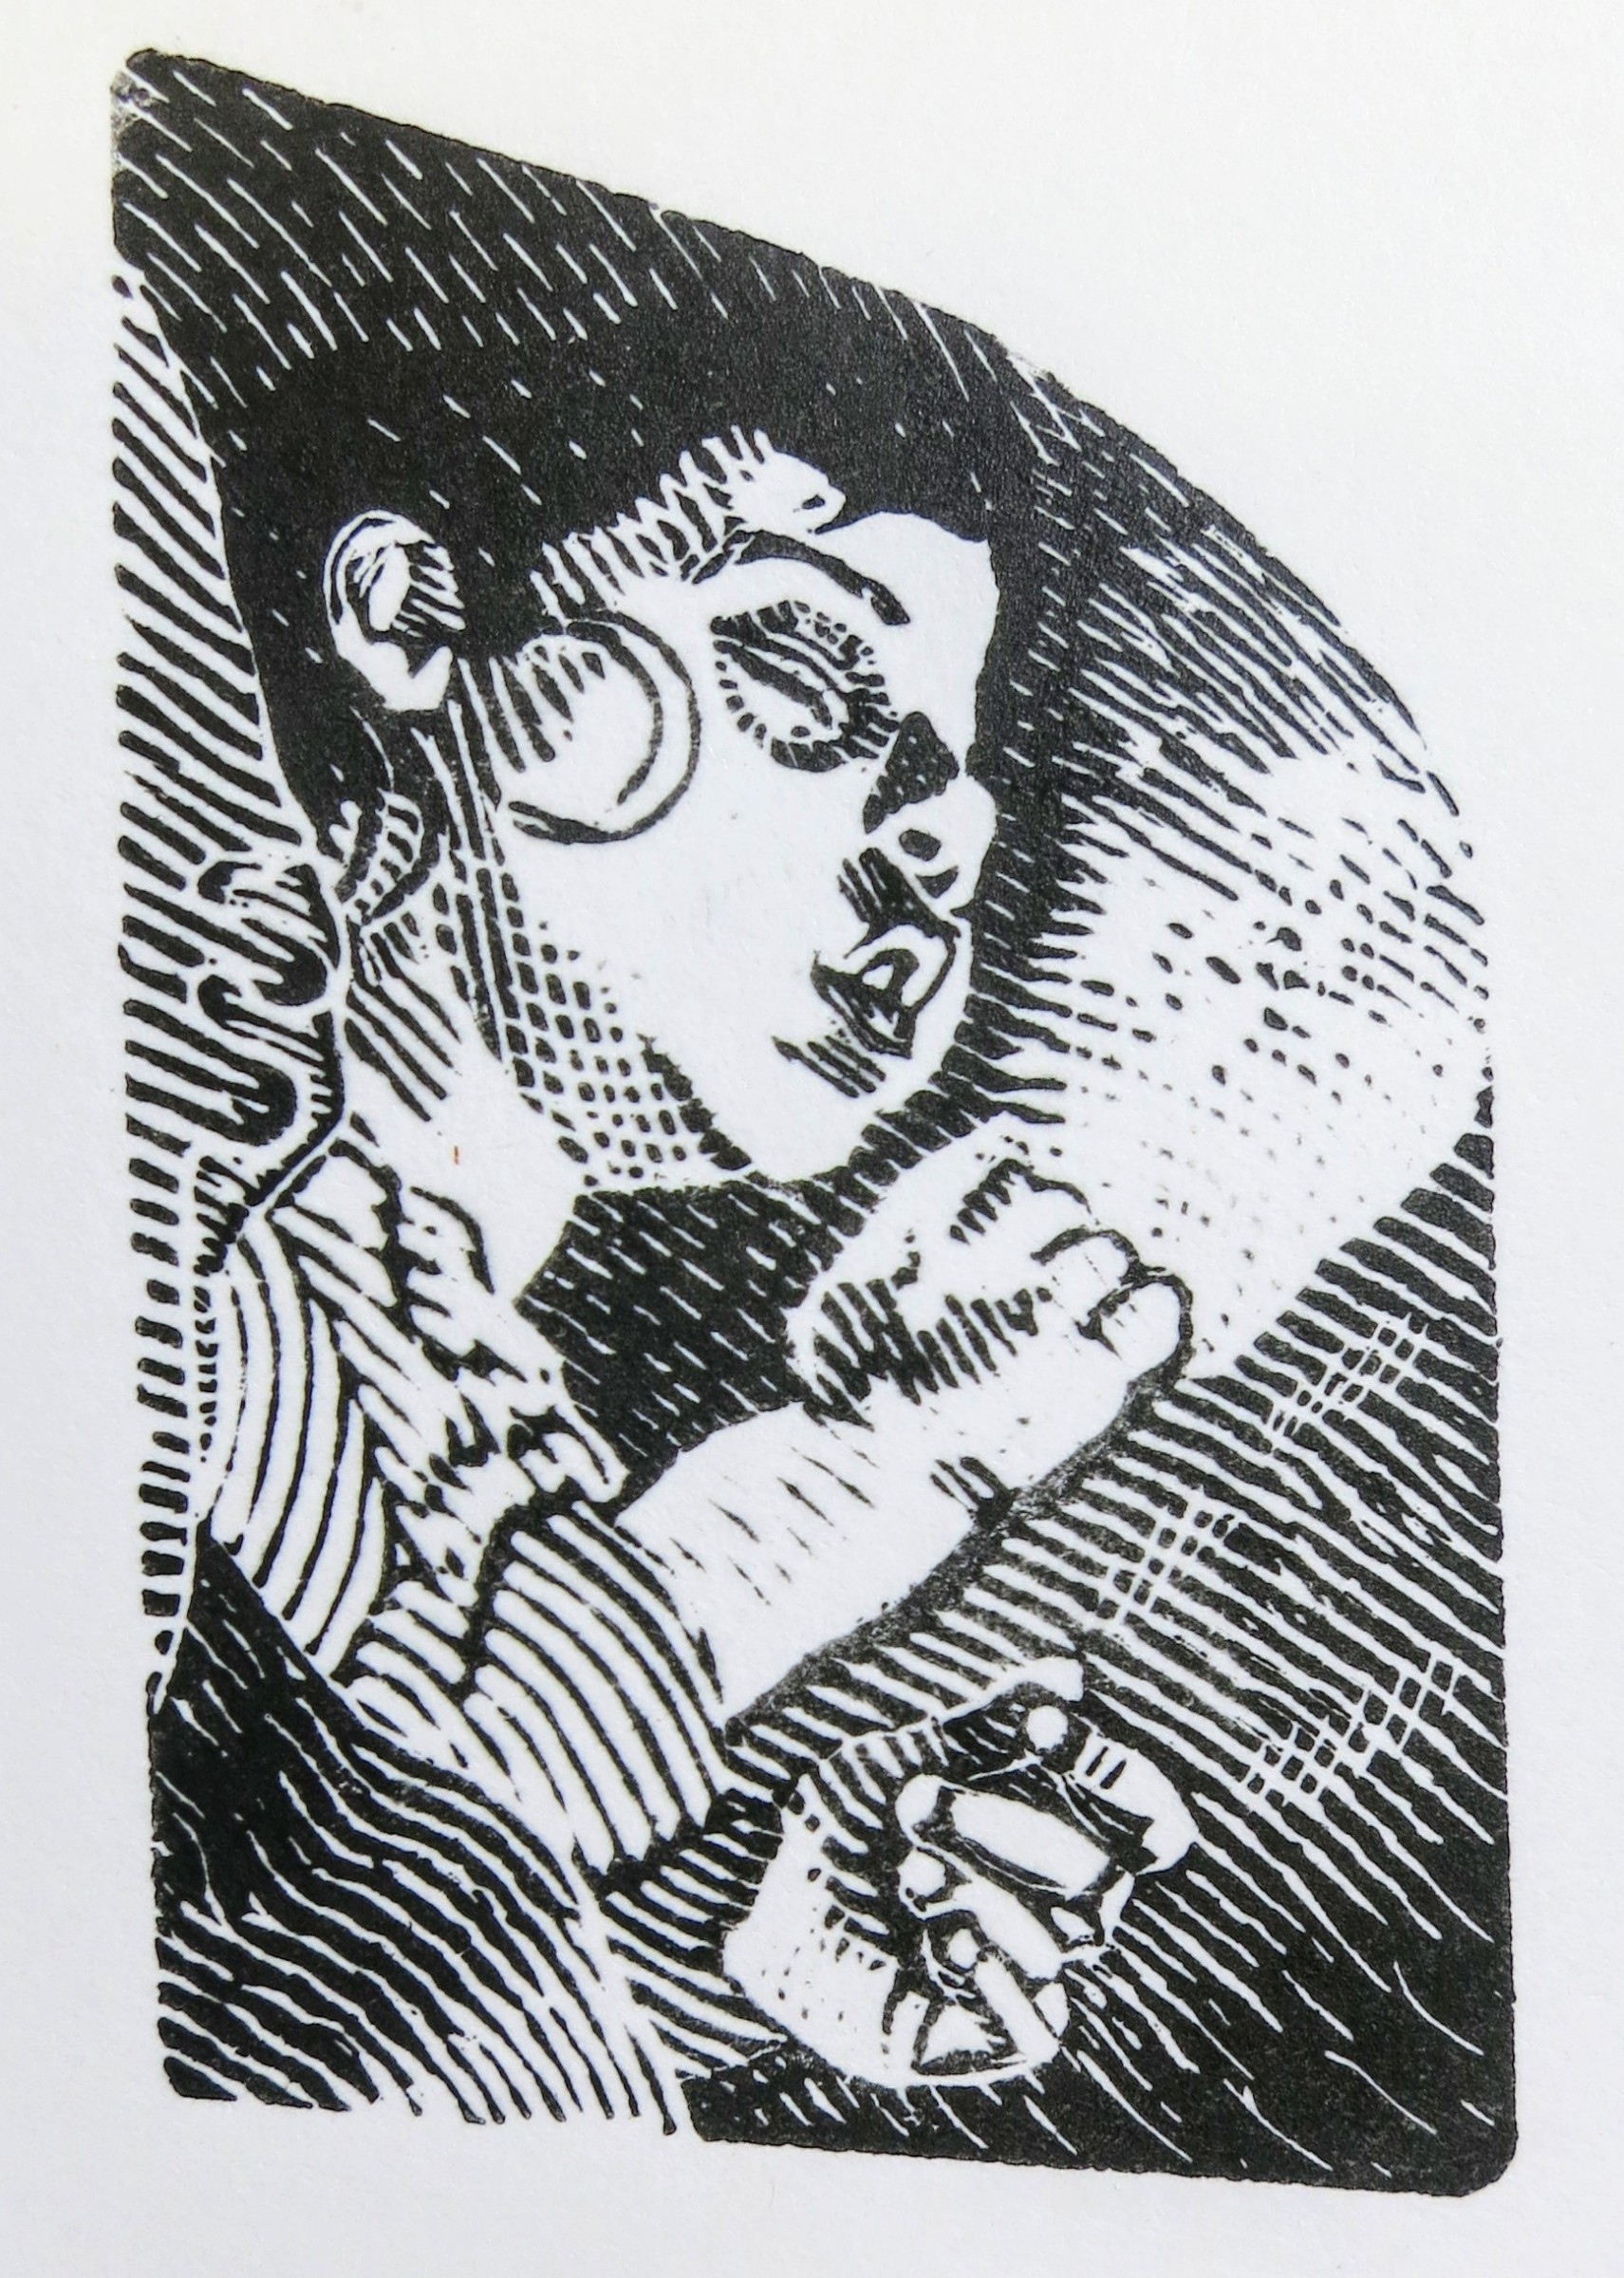 """<span class=""""link fancybox-details-link""""><a href=""""/exhibitions/17/works/image_standalone639/"""">View Detail Page</a></span><p><strong>Liam Beckett</strong></p><p>Sleeping Son</p><p>wood engraving, ed of 10</p><p>14 x 16cm</p><p>£190 framed</p><p>£90 unframed</p>"""